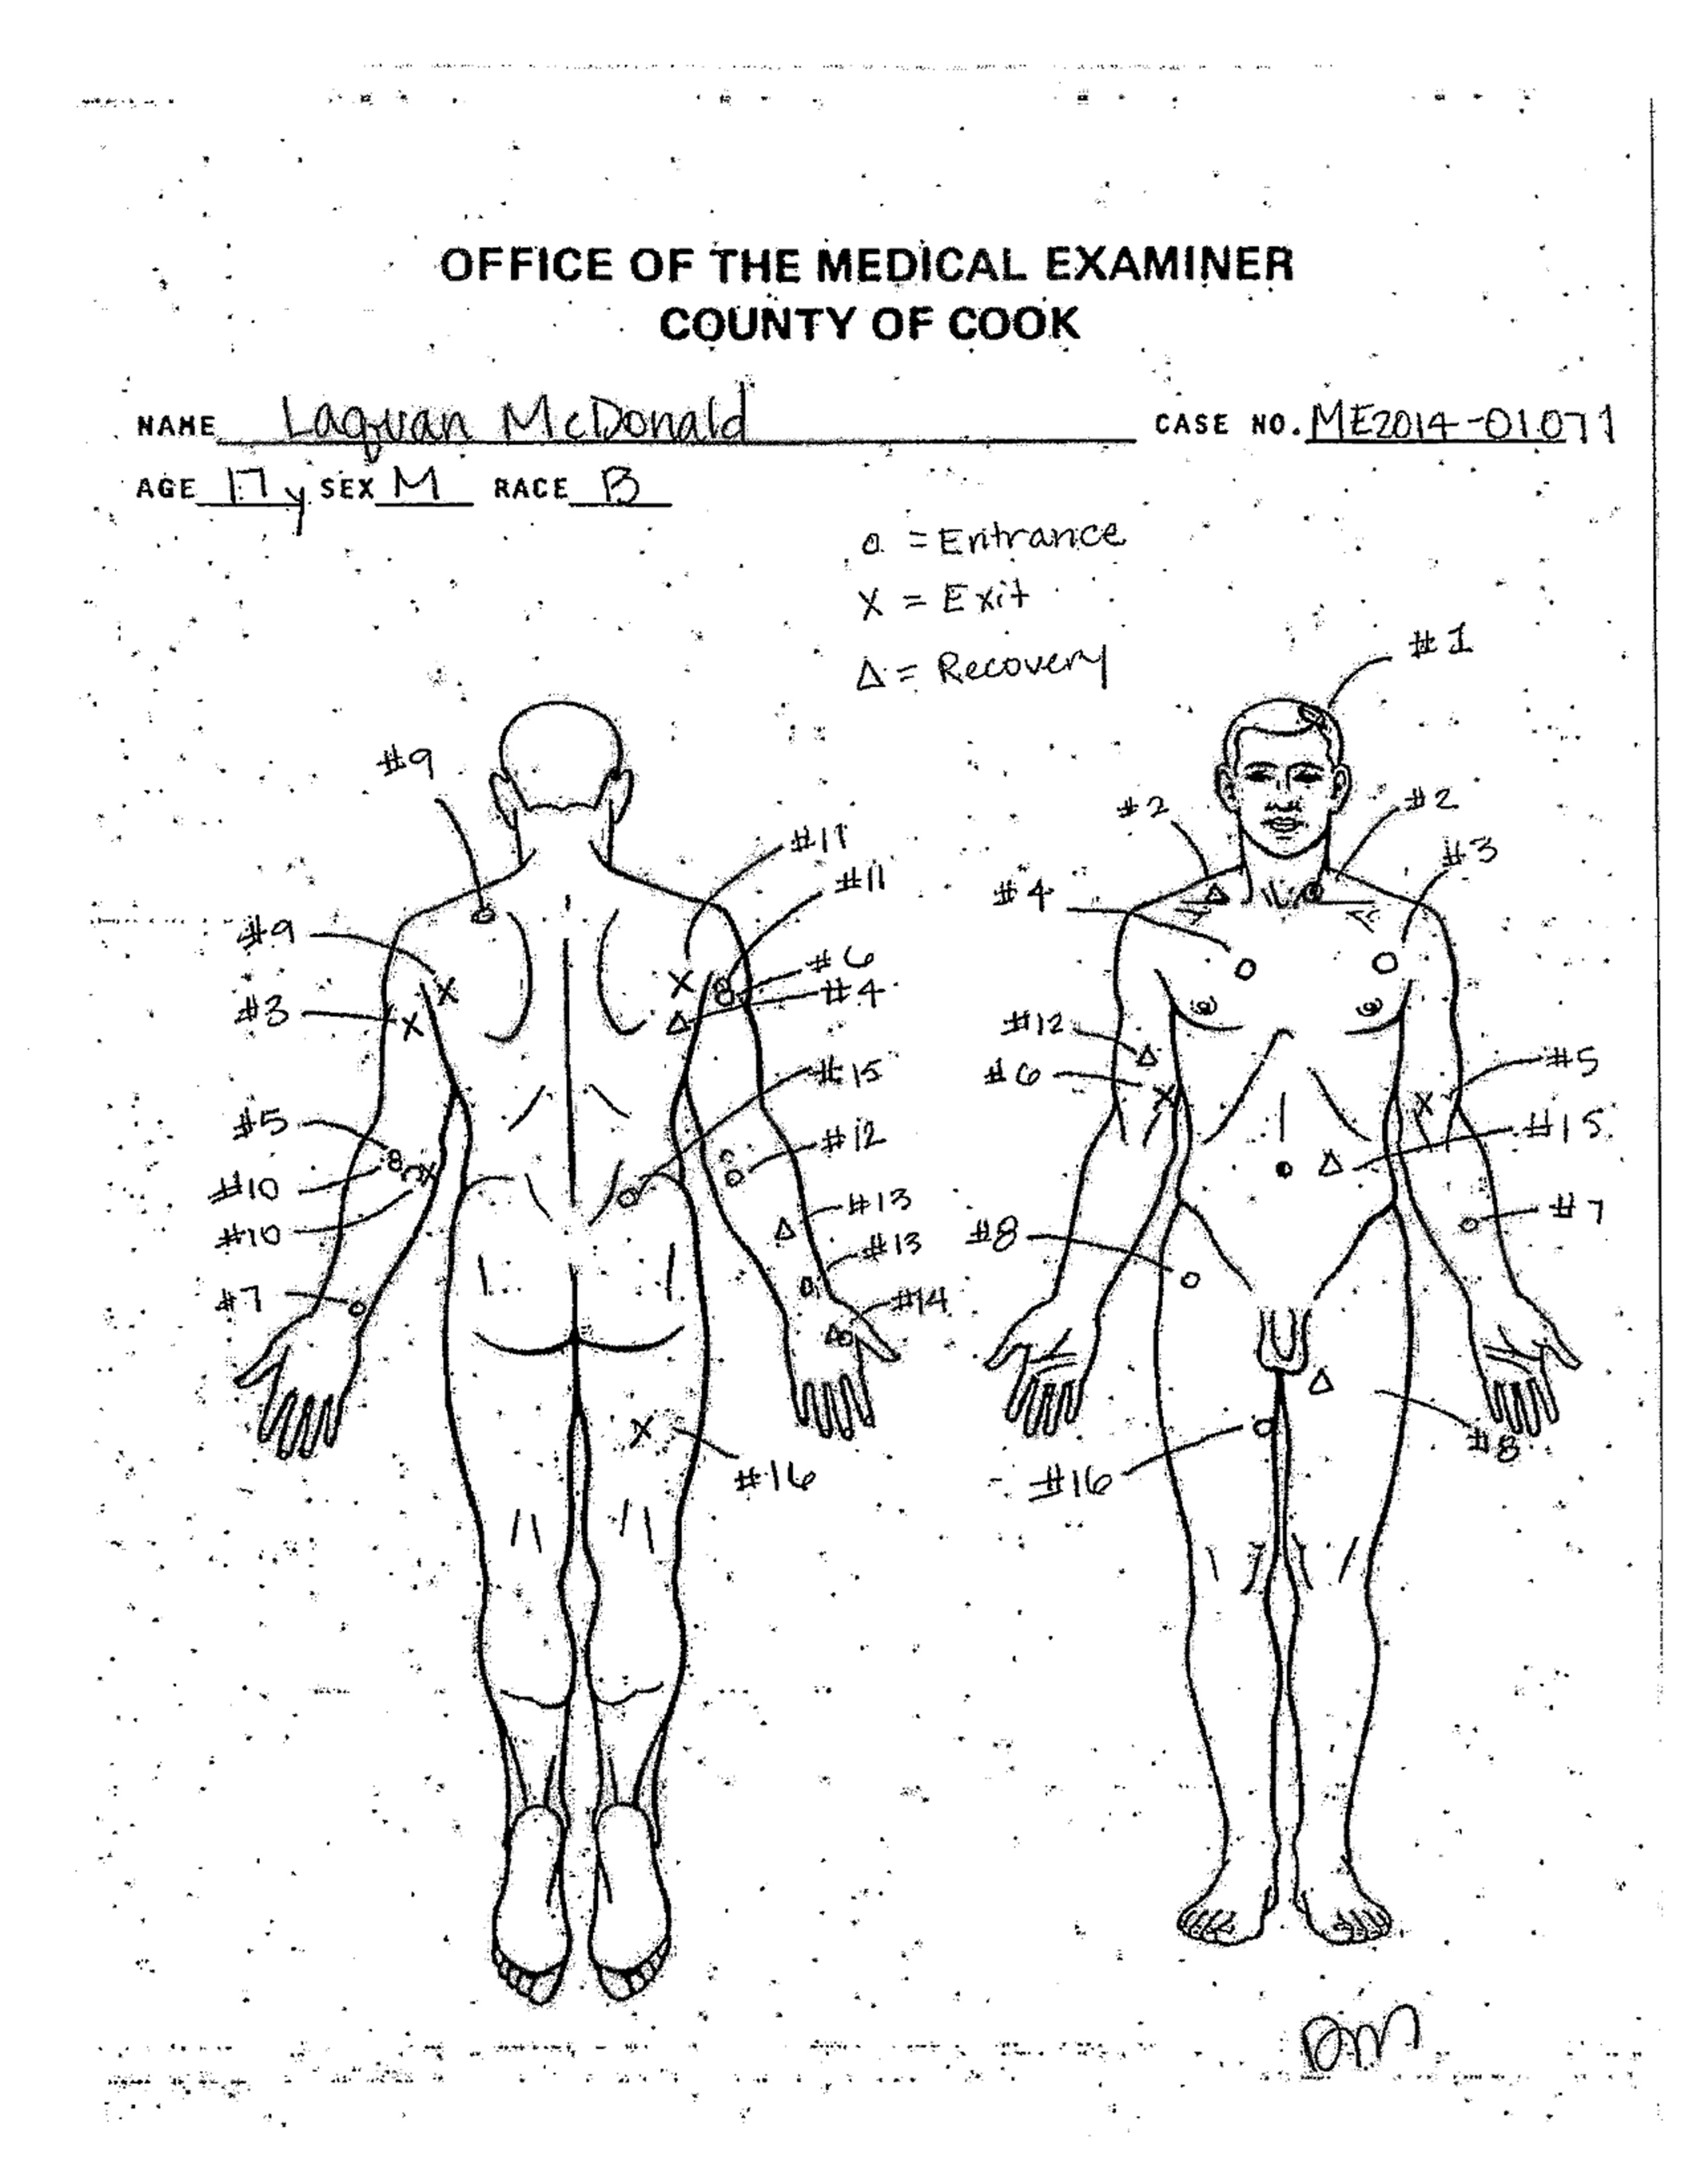 Autopsy diagram showing the location of wounds on the body Laquan McDonald, shot by a Chicago Police officer 16 times on Oct. 20, 2014.